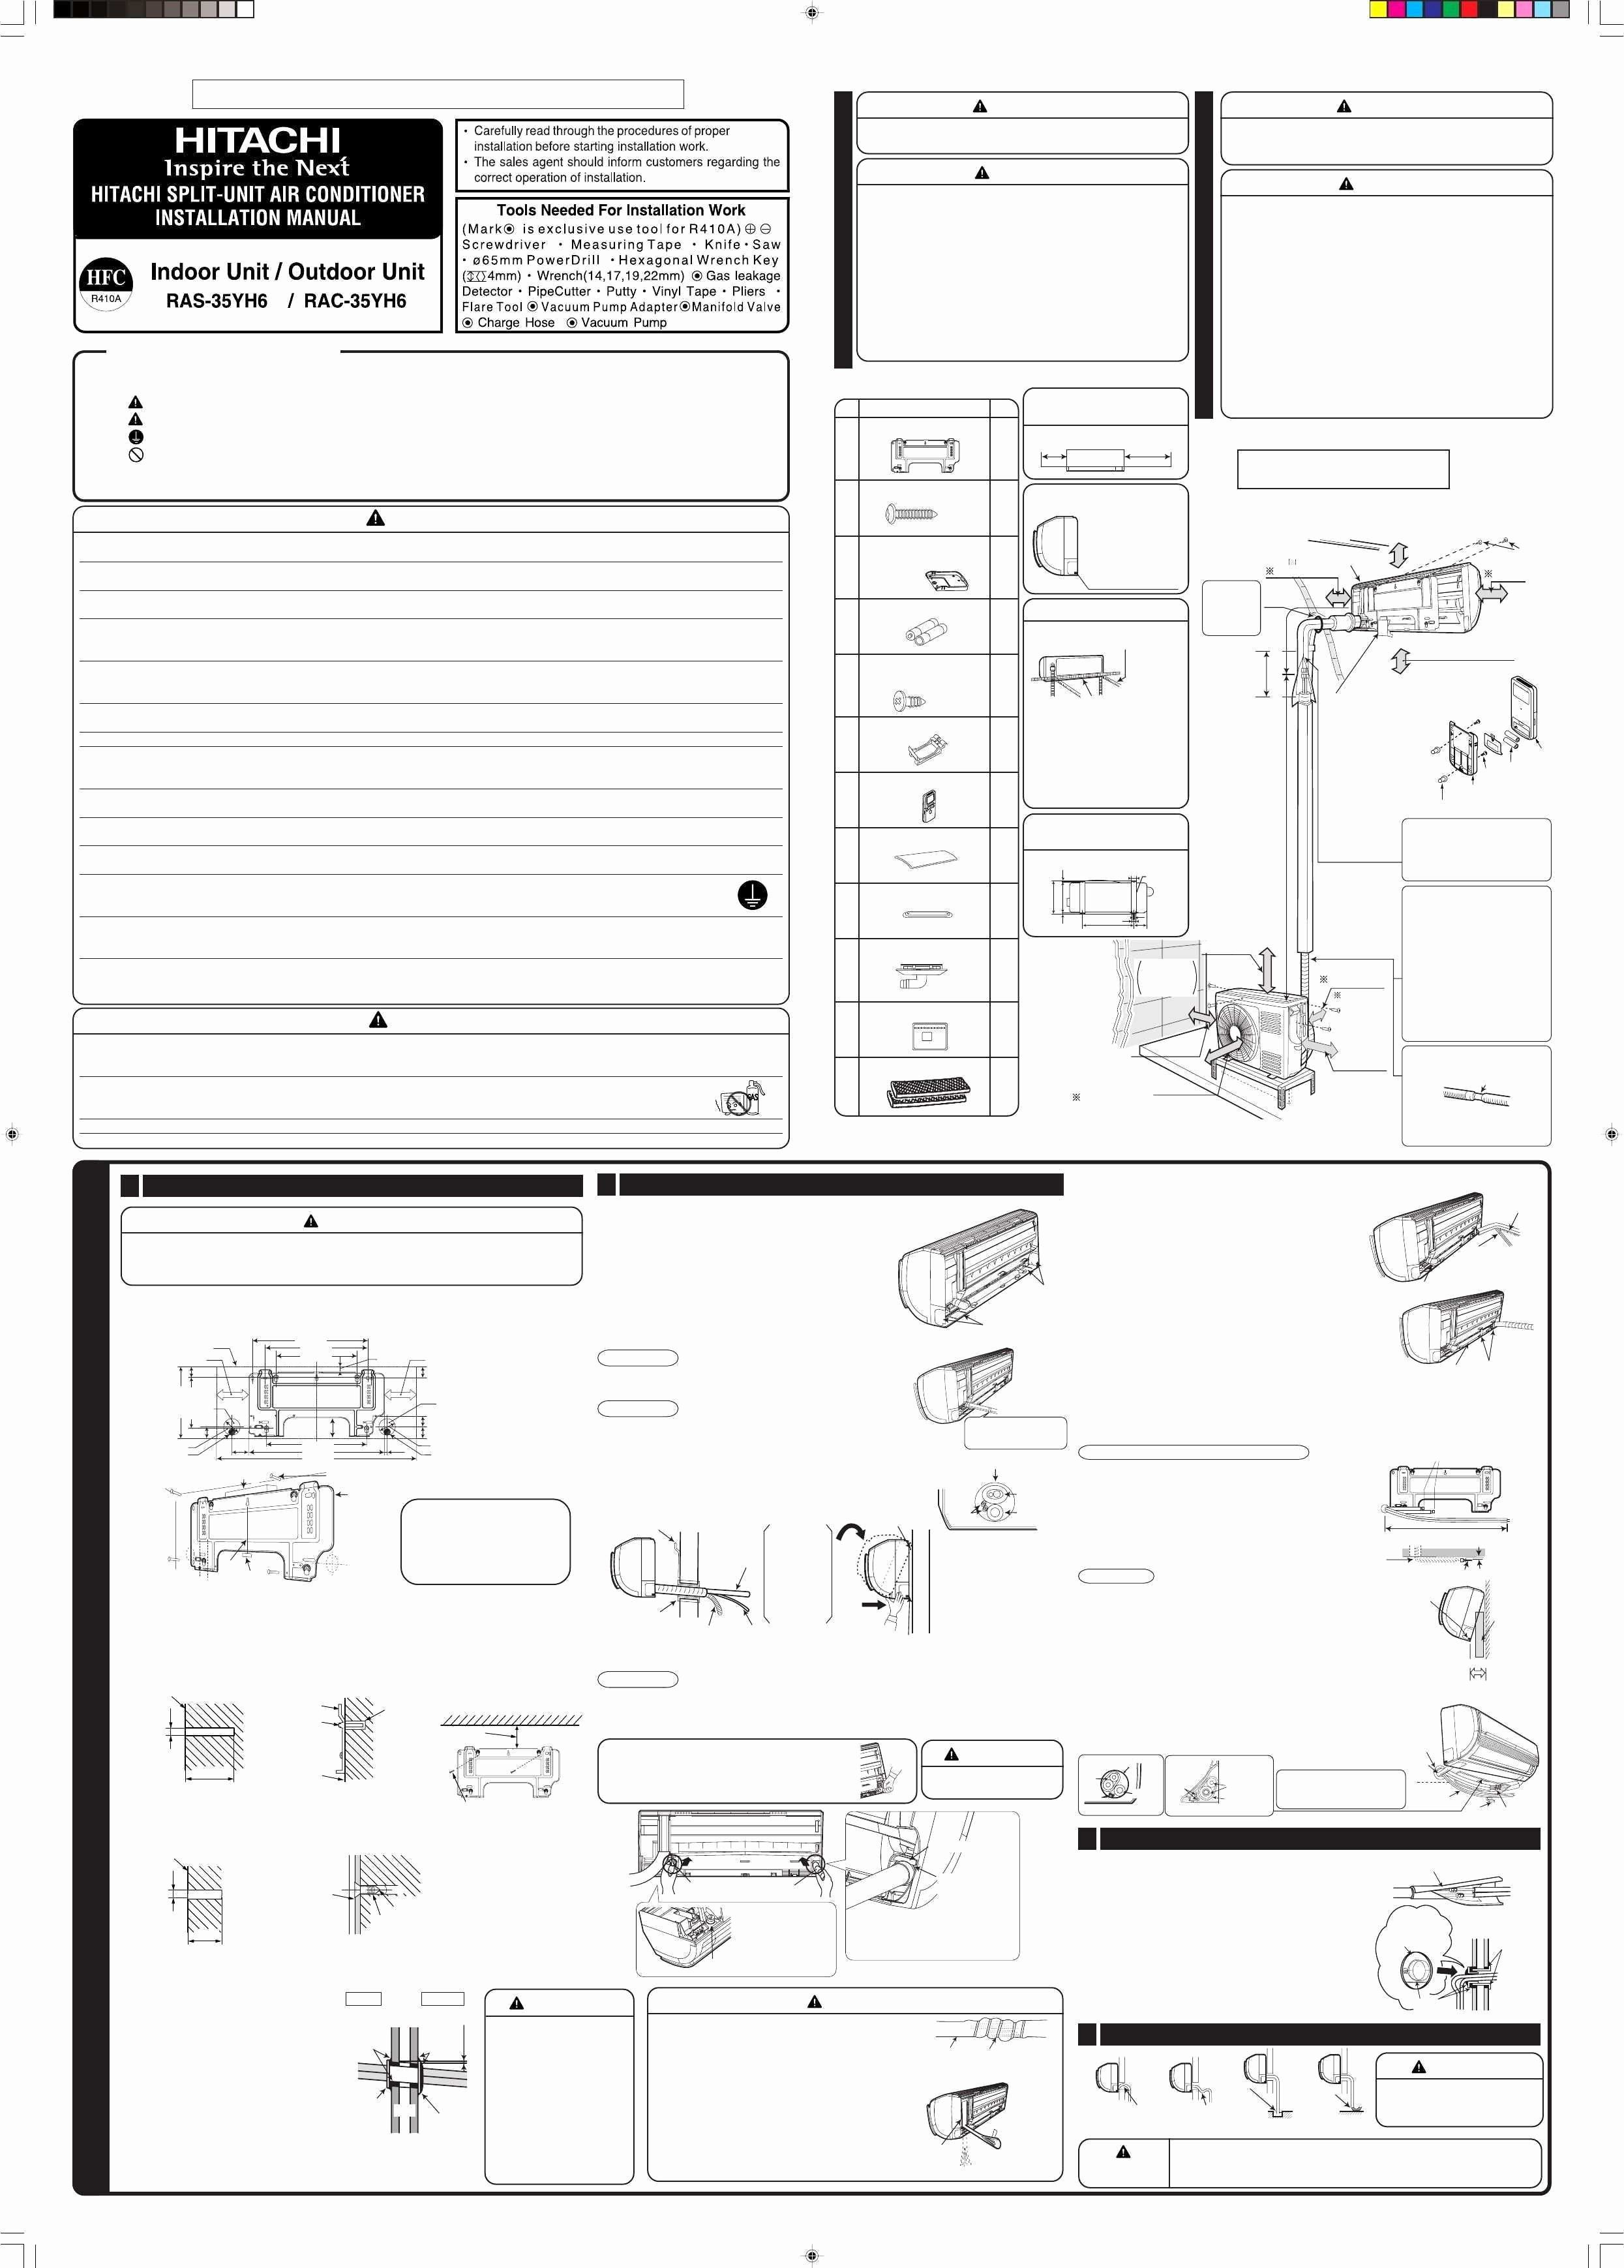 Drawing Book Of The Antonymy Beautiful Clarion Xmd1 Manual Ebook Diagram Car Air Conditioning Electrical Diagram